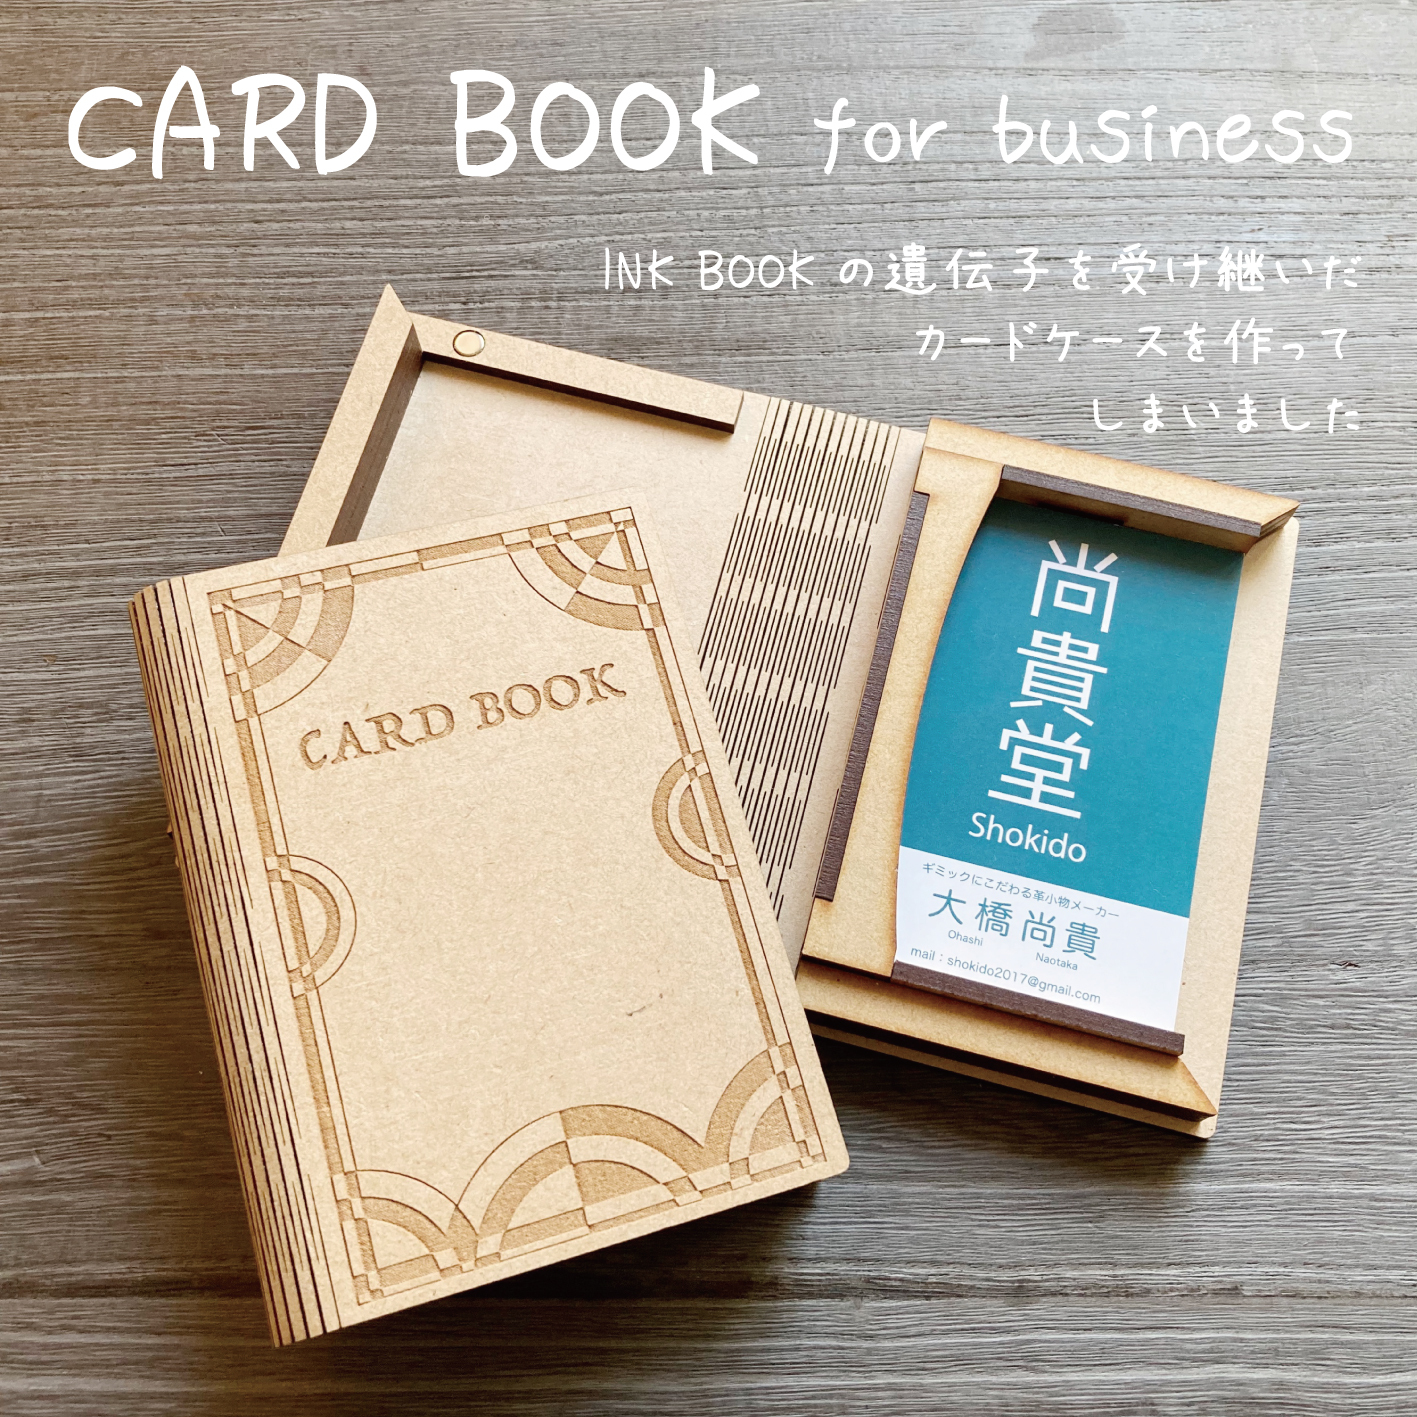 CARD BOOK for business